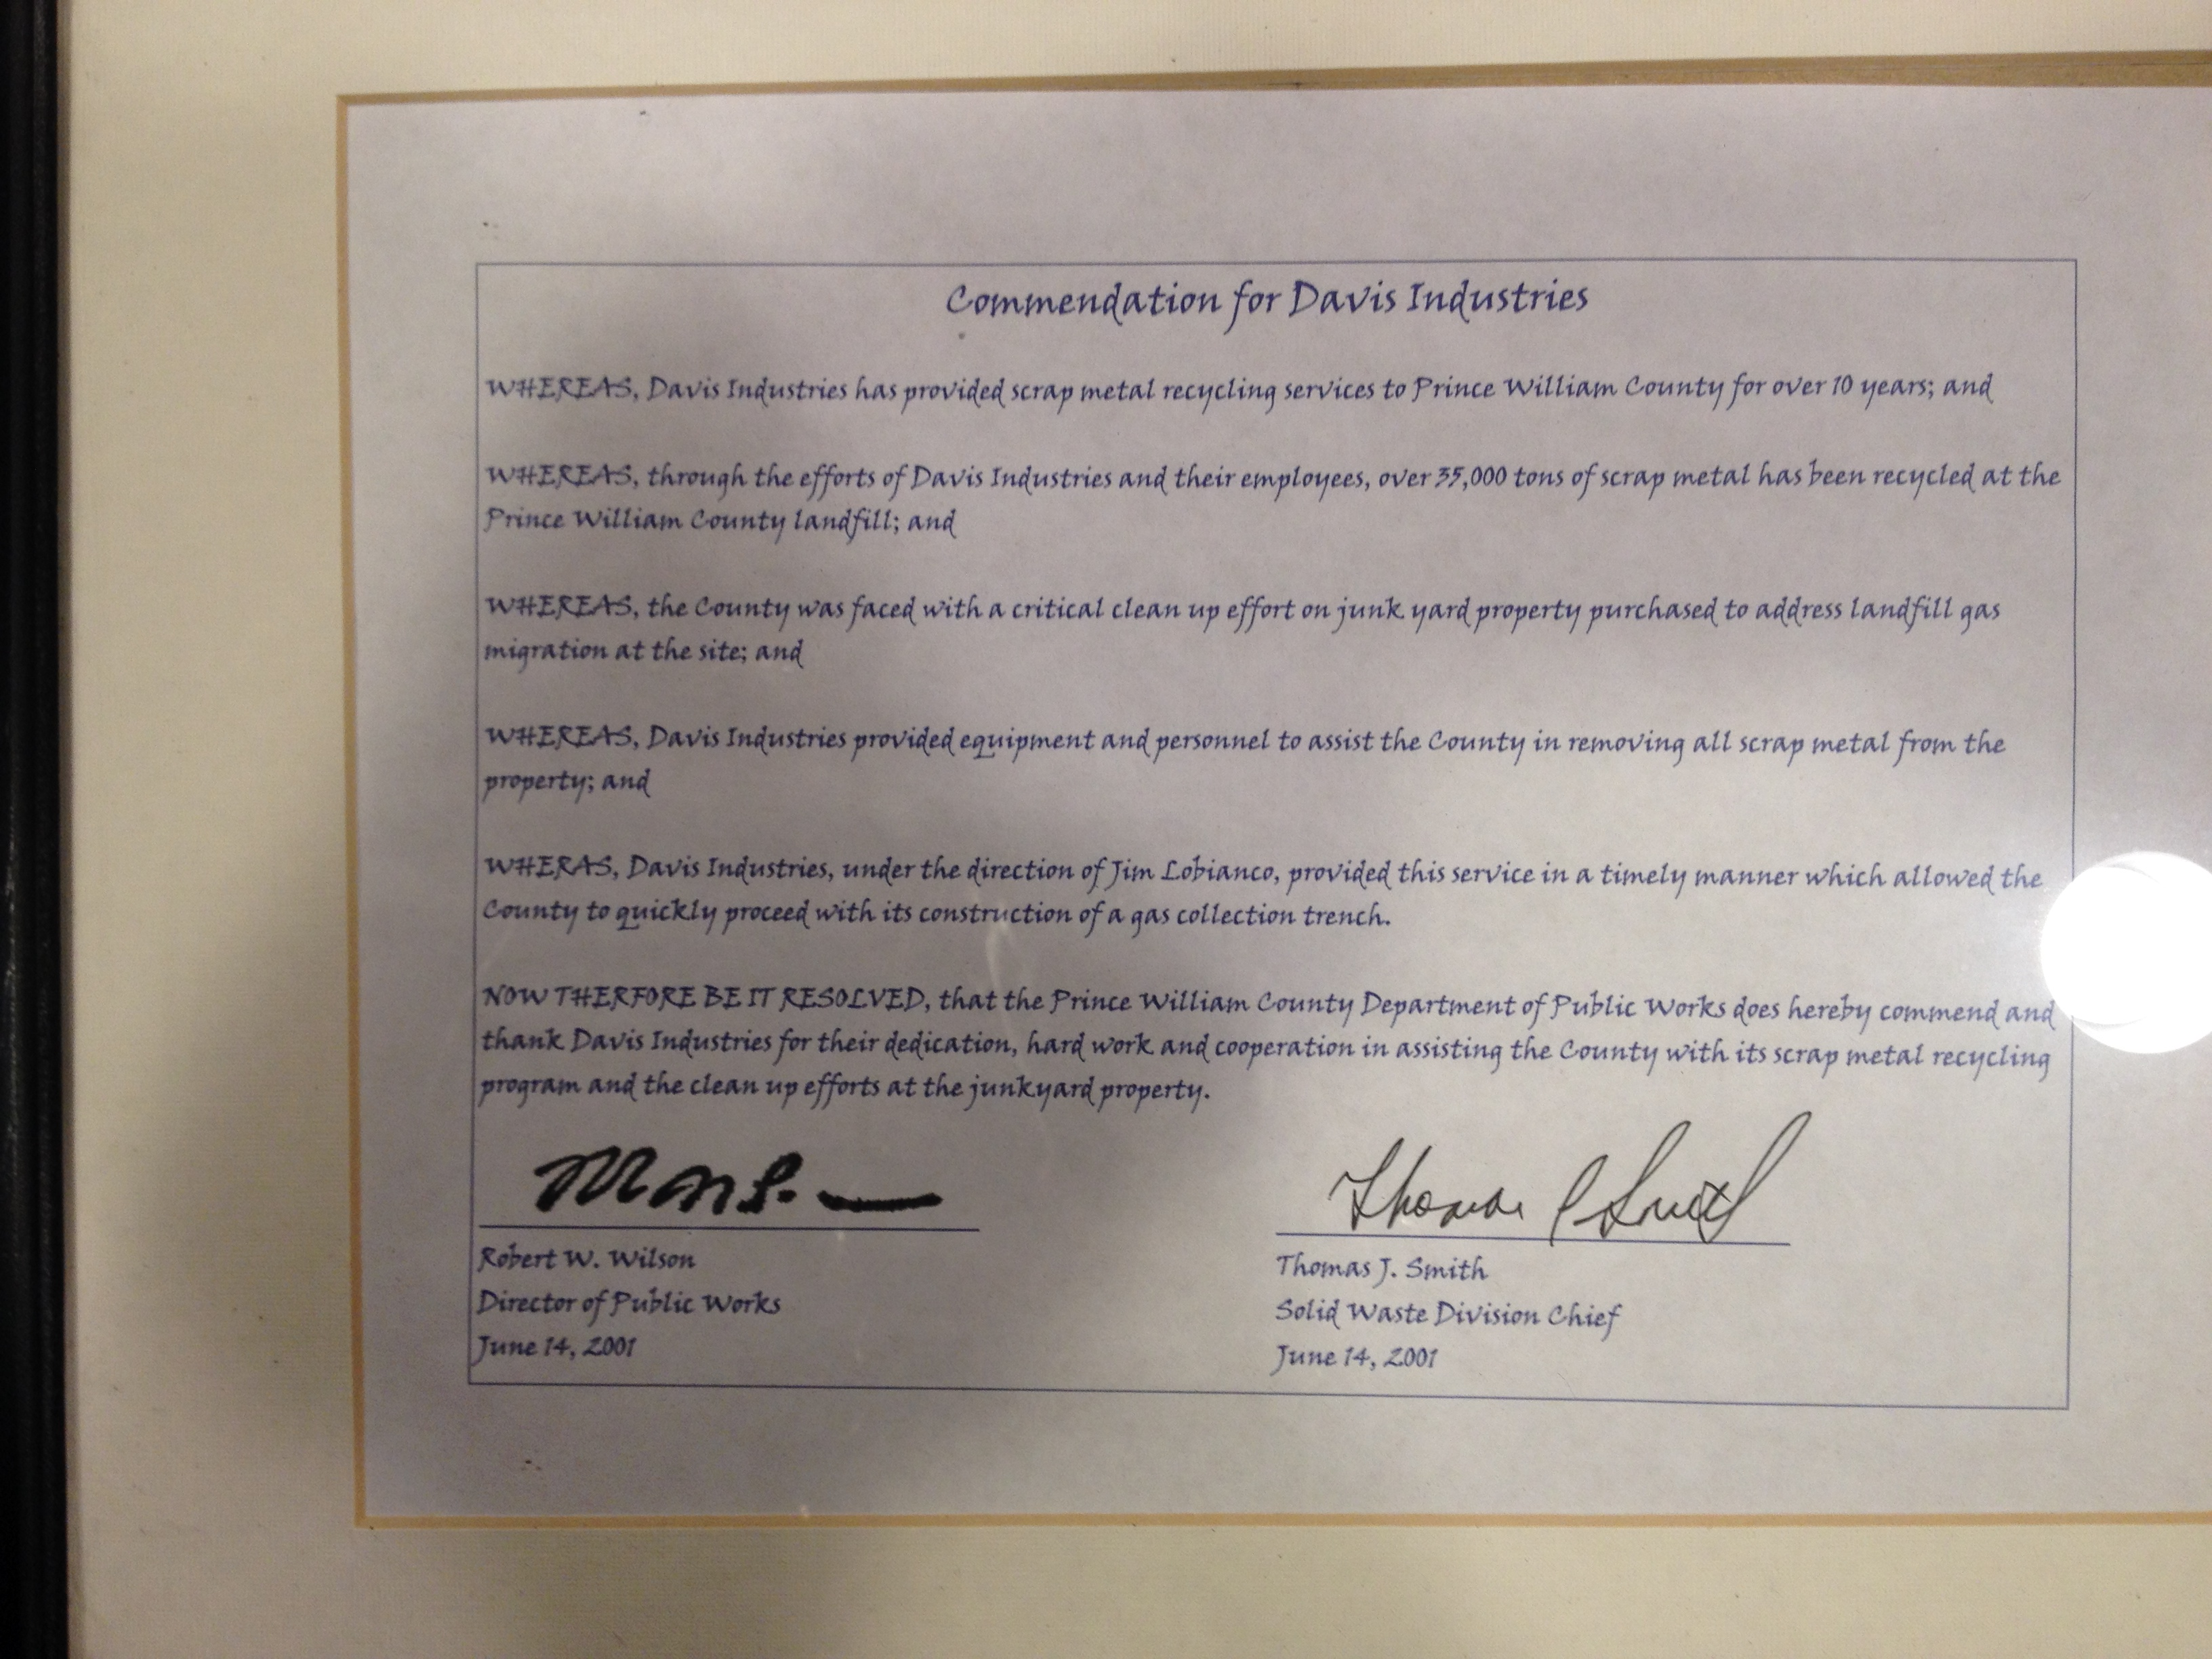 Prince William County Commendation